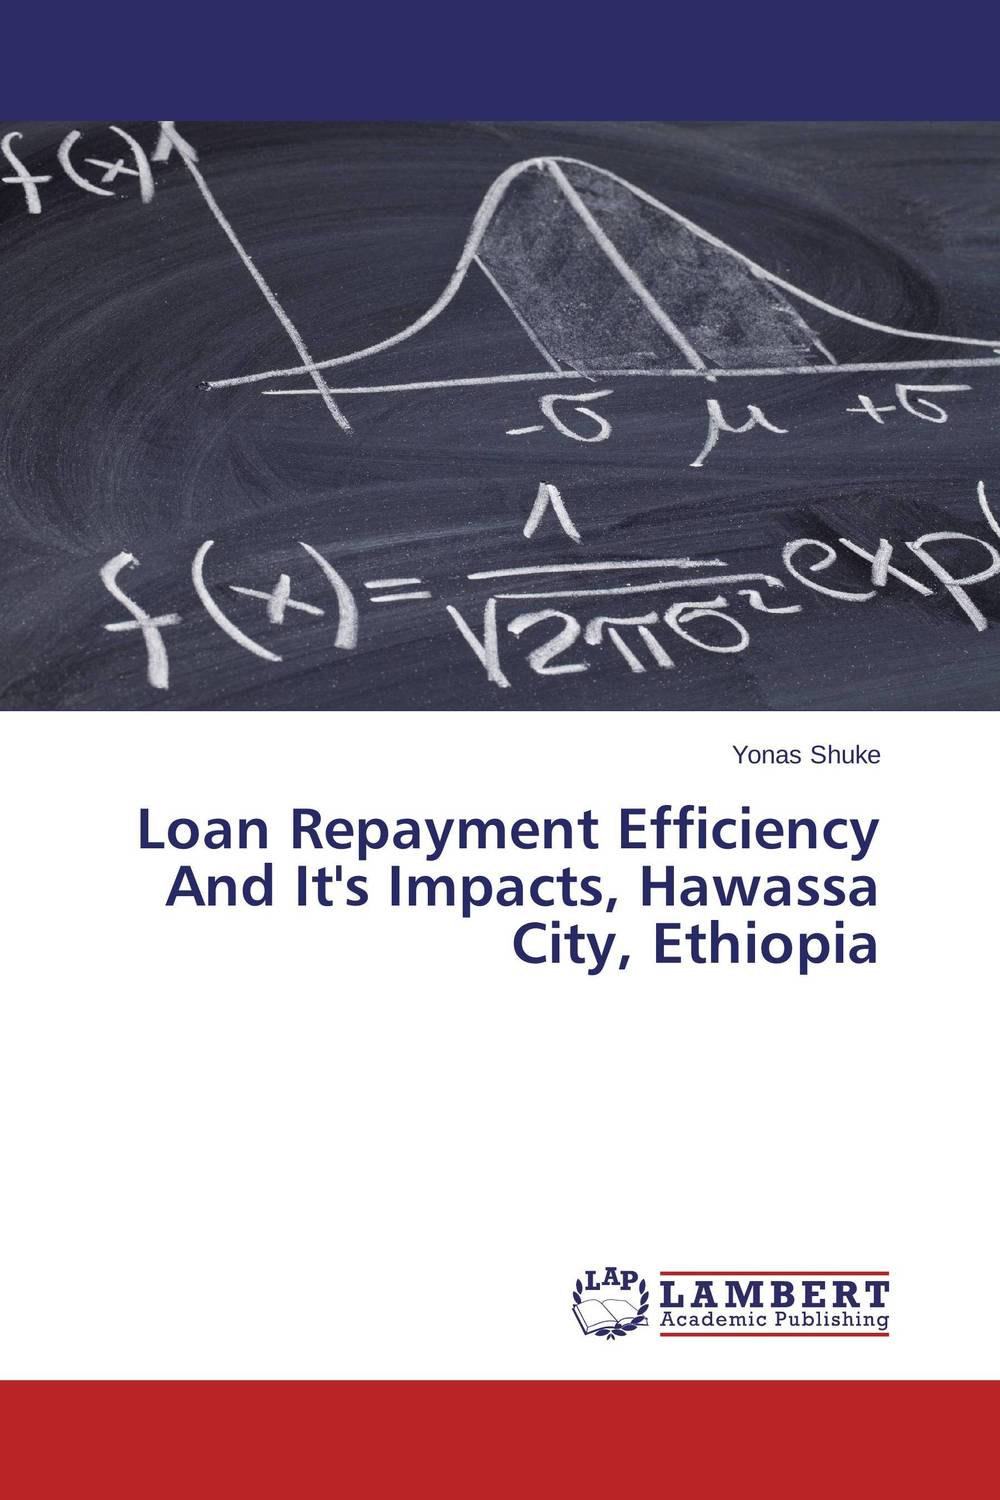 Loan Repayment Efficiency And It's Impacts, Hawassa City, Ethiopia the borrowers